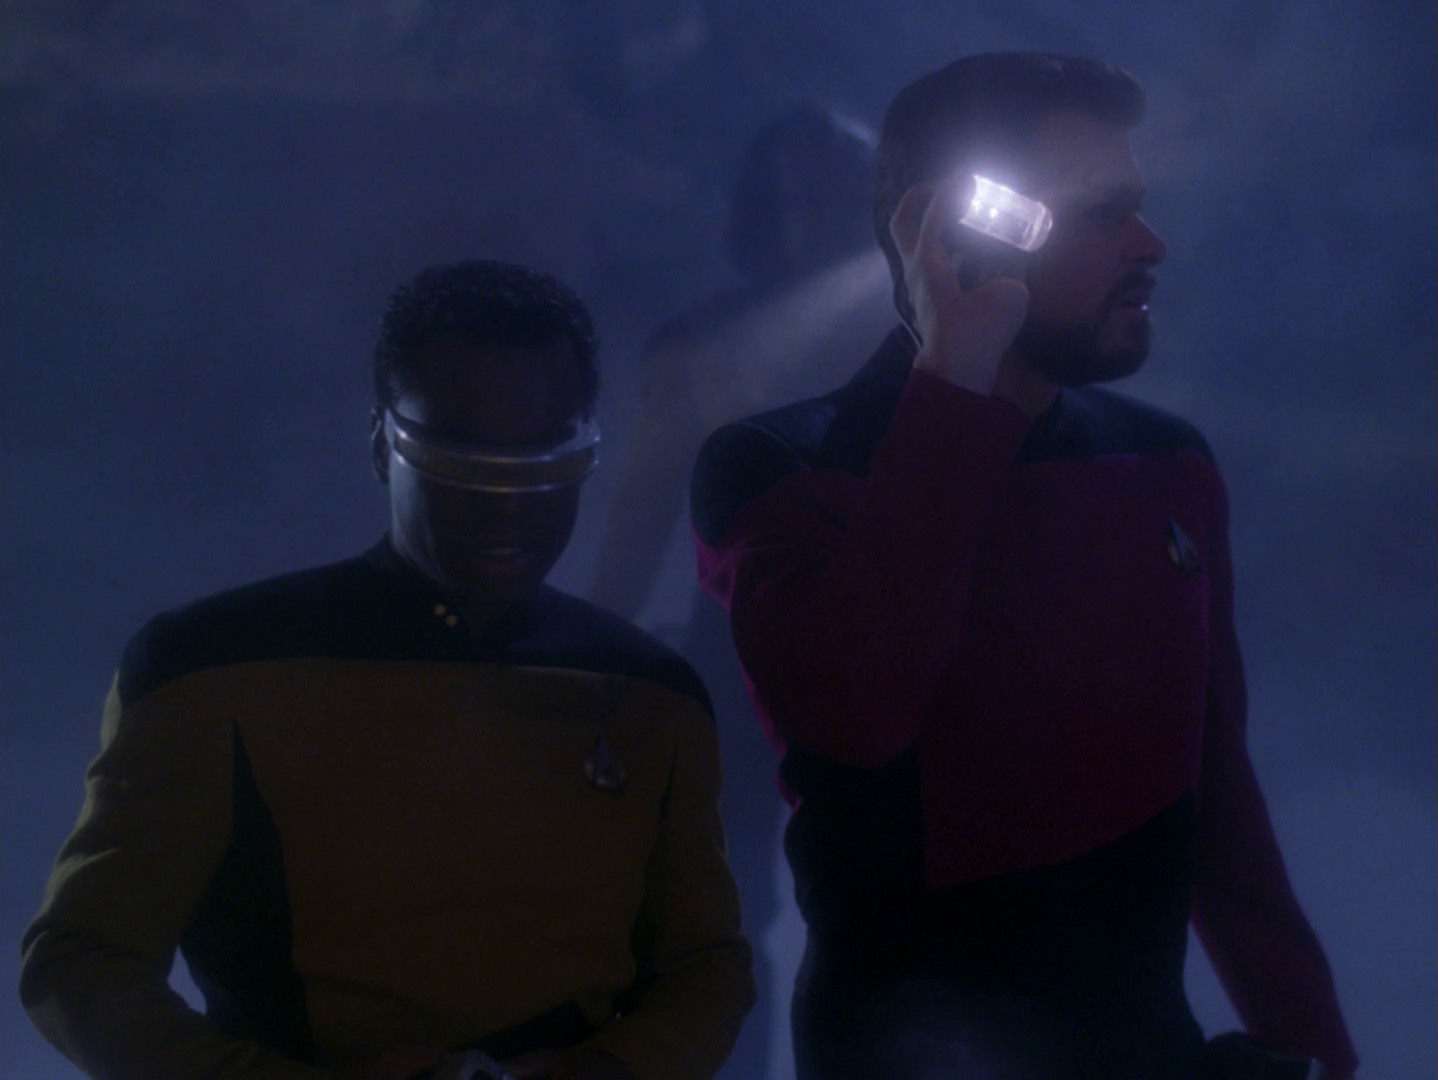 Star Trek: The Next Generation - Gedächtnisverlust (Future Imperfect) Blu-ray Screencap © CBS/Paramount